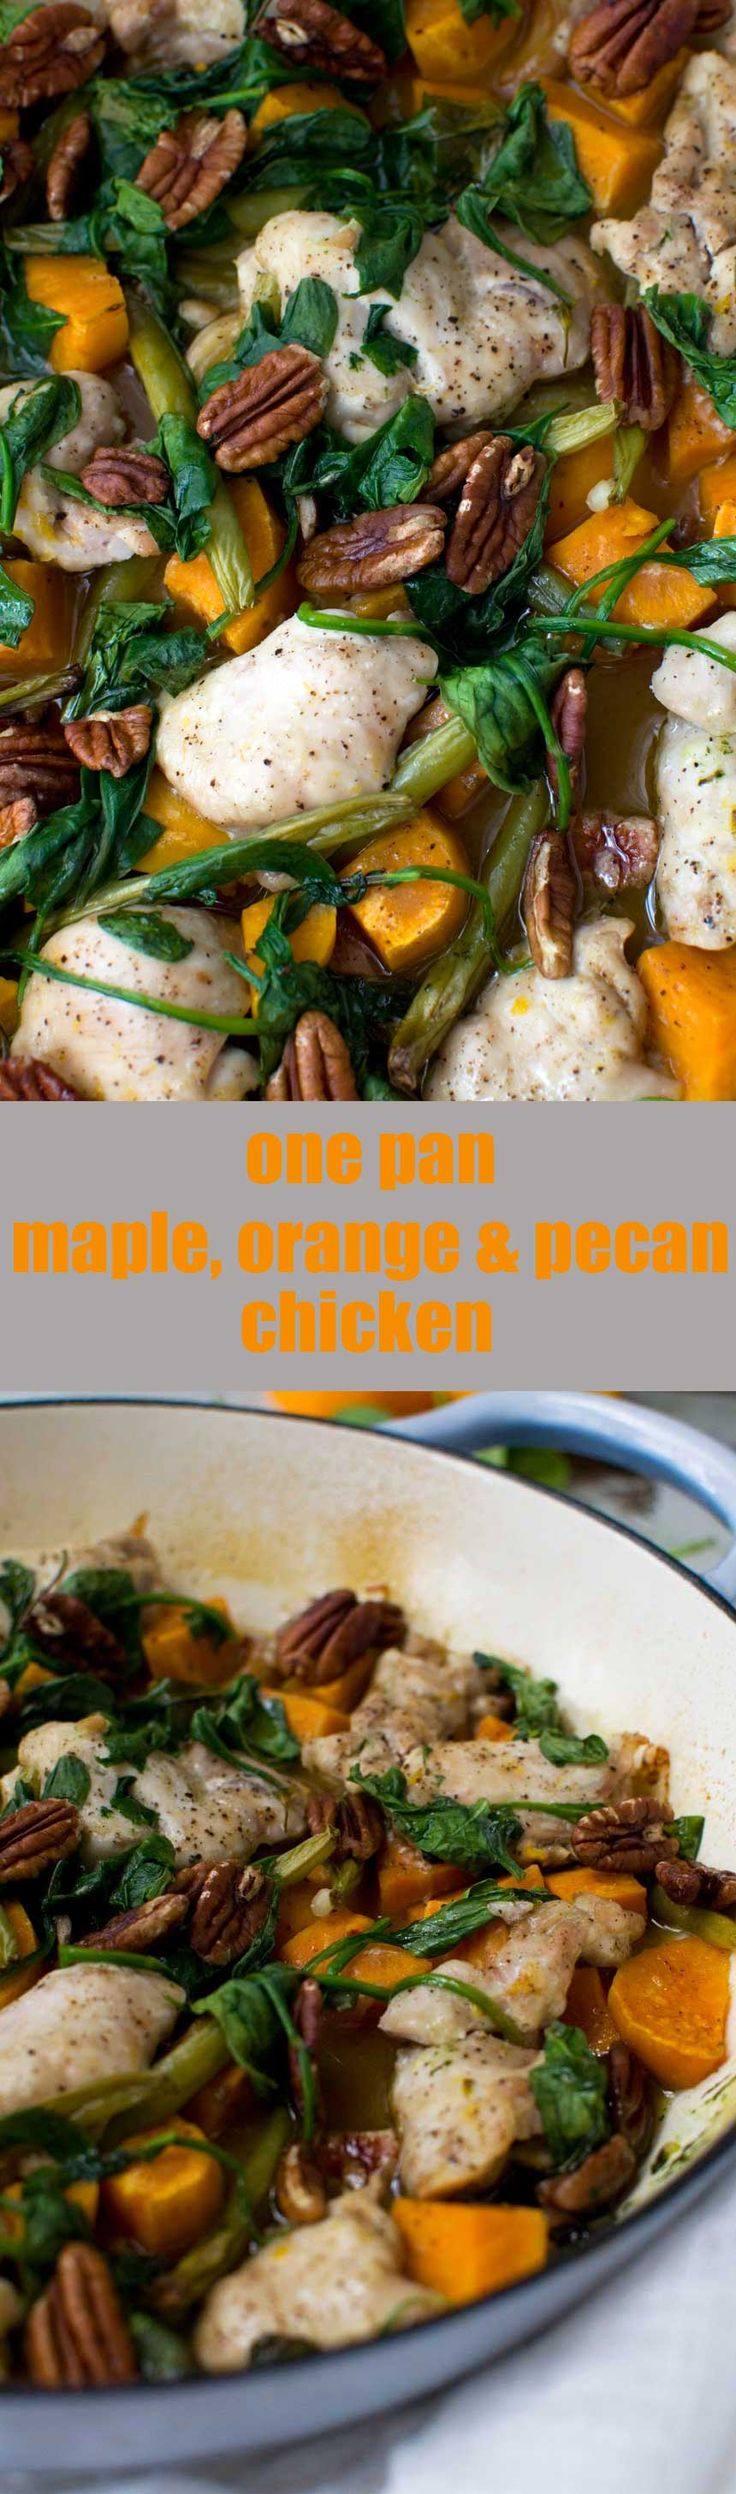 One pan maple, orange and pecan chicken